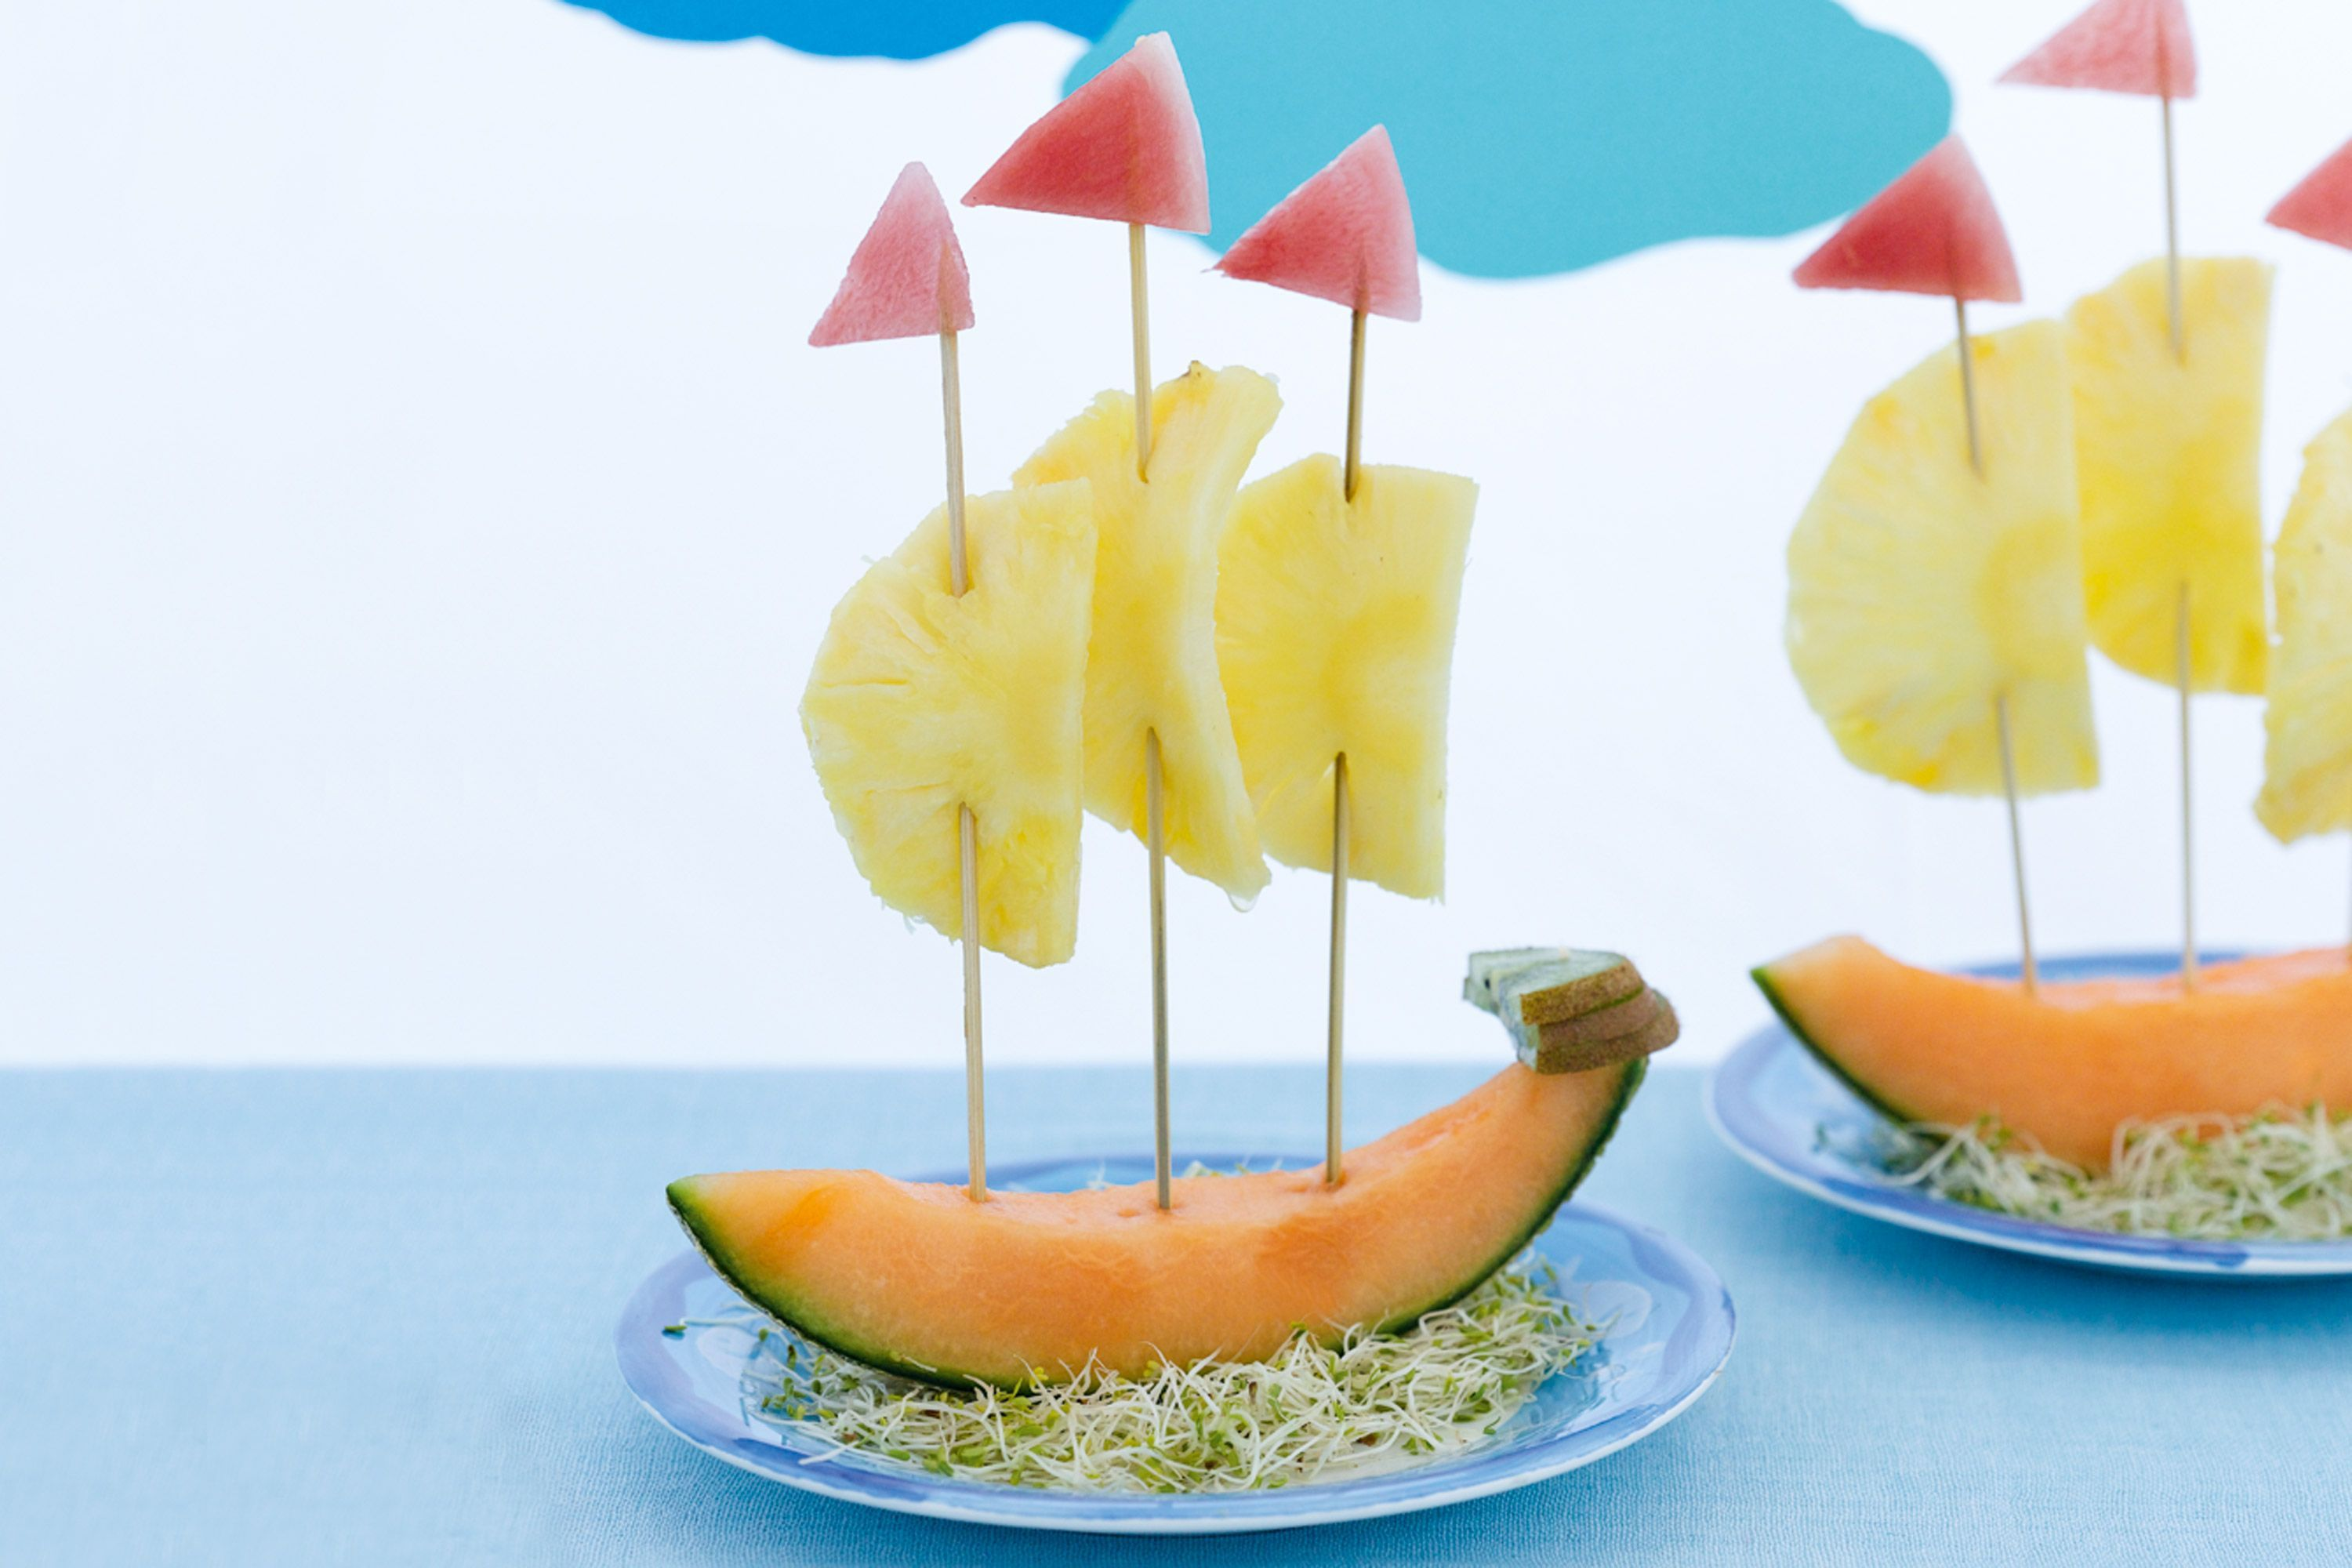 Fruity first fleet It's time to play with your food! Try this fruity snack sailboat for an easy after school treat. first fleet It's time to play with your food! Try this fruity snack sailboat for an easy after school treat.It's time to play with your food! Try this fruity snack sailboat for an easy after school treat.